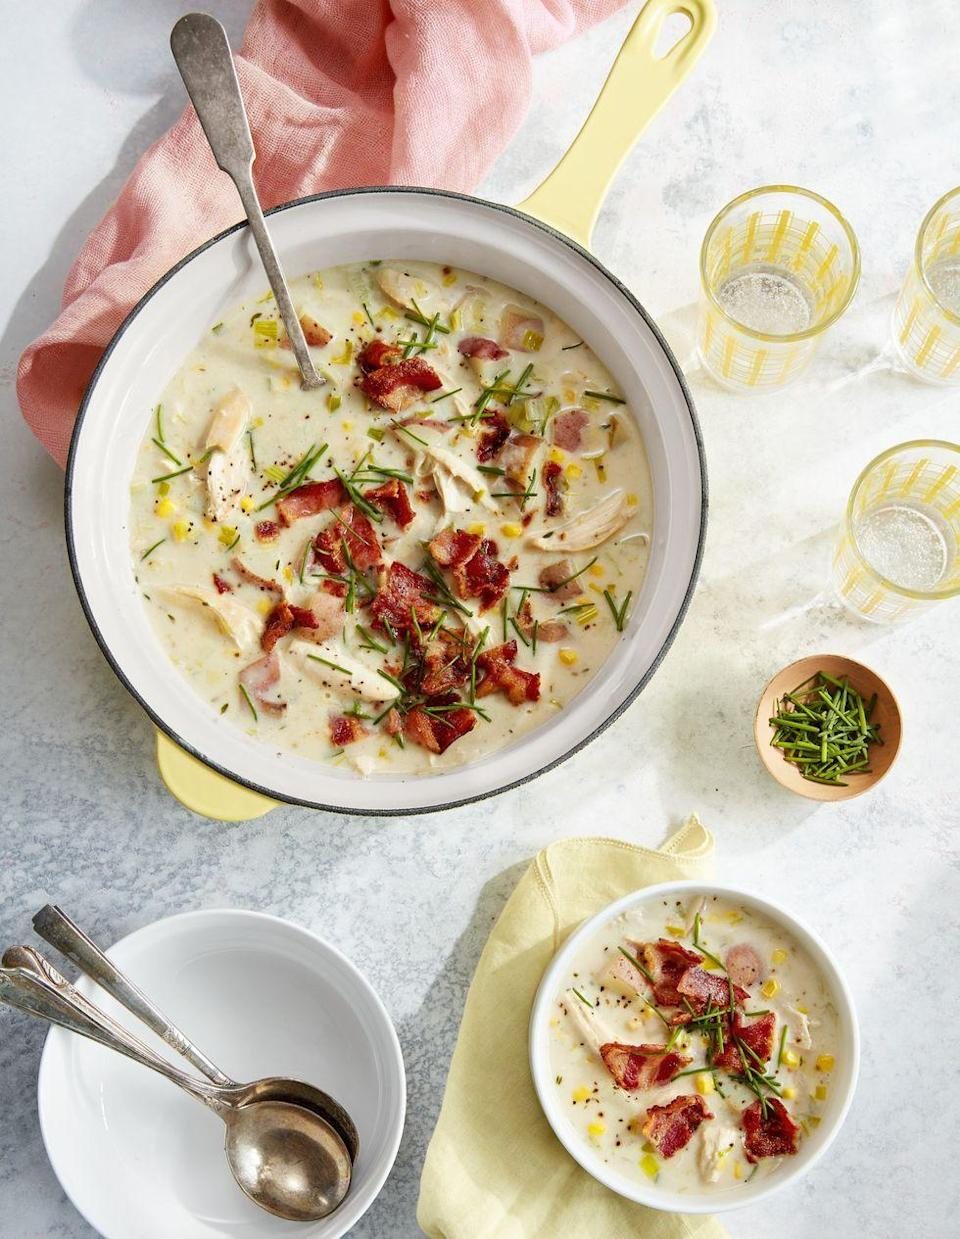 "<p>This quick but hearty weeknight meal gets a big boost of speed from leftover rotisserie chicken. And a big boost of flavor from some smart spices and bacon!</p><p><strong><a href=""https://www.countryliving.com/food-drinks/a26767670/rotisserie-chicken-potato-chowder-recipe/"" rel=""nofollow noopener"" target=""_blank"" data-ylk=""slk:Get the recipe"" class=""link rapid-noclick-resp"">Get the recipe</a>.</strong></p><p><strong><a class=""link rapid-noclick-resp"" href=""https://www.amazon.com/dp/B075Q991FL/?tag=syn-yahoo-20&ascsubtag=%5Bartid%7C10050.g.1050%5Bsrc%7Cyahoo-us"" rel=""nofollow noopener"" target=""_blank"" data-ylk=""slk:SHOP SOUP POTS"">SHOP SOUP POTS</a><br></strong></p>"